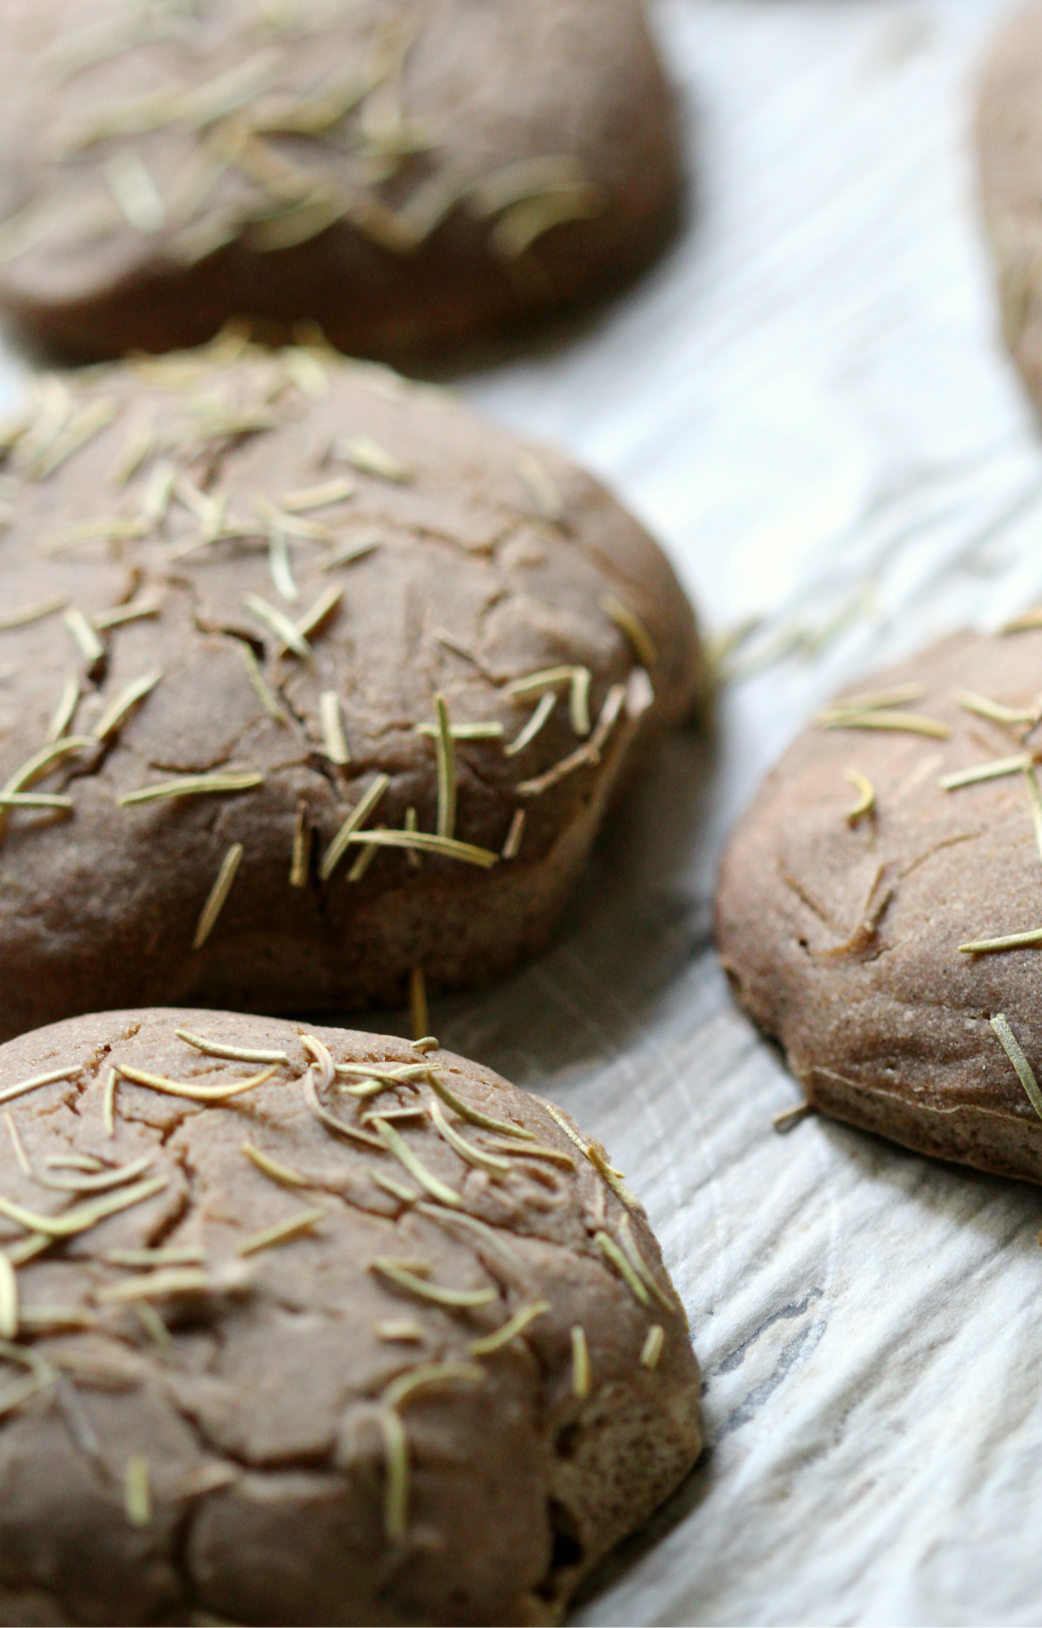 Fluffy Rosemary Yeast Buns | Strength and Sunshine @RebeccaGF666 Soft fluffy rosemary yeast buns that are gluten-free and vegan. The warm and comforting aromas of savory herbs with a special technique for soft and fluffy dinner buns will have you reaching for the bread basket.